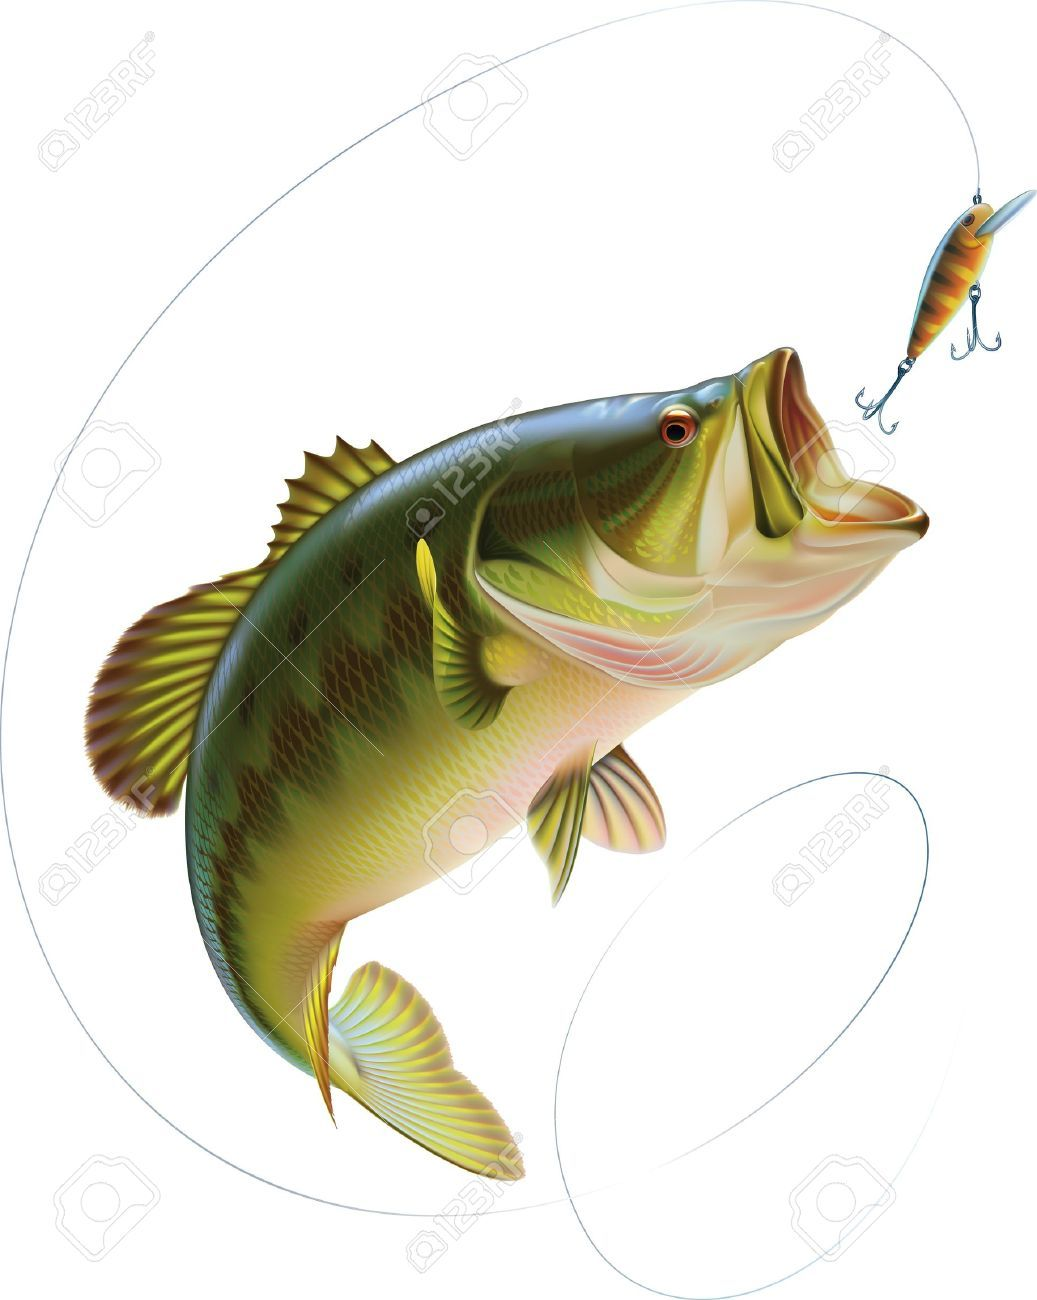 Bass Jumping Out of Water Clipart (65+) | Fish in 2019 ... png royalty free stock